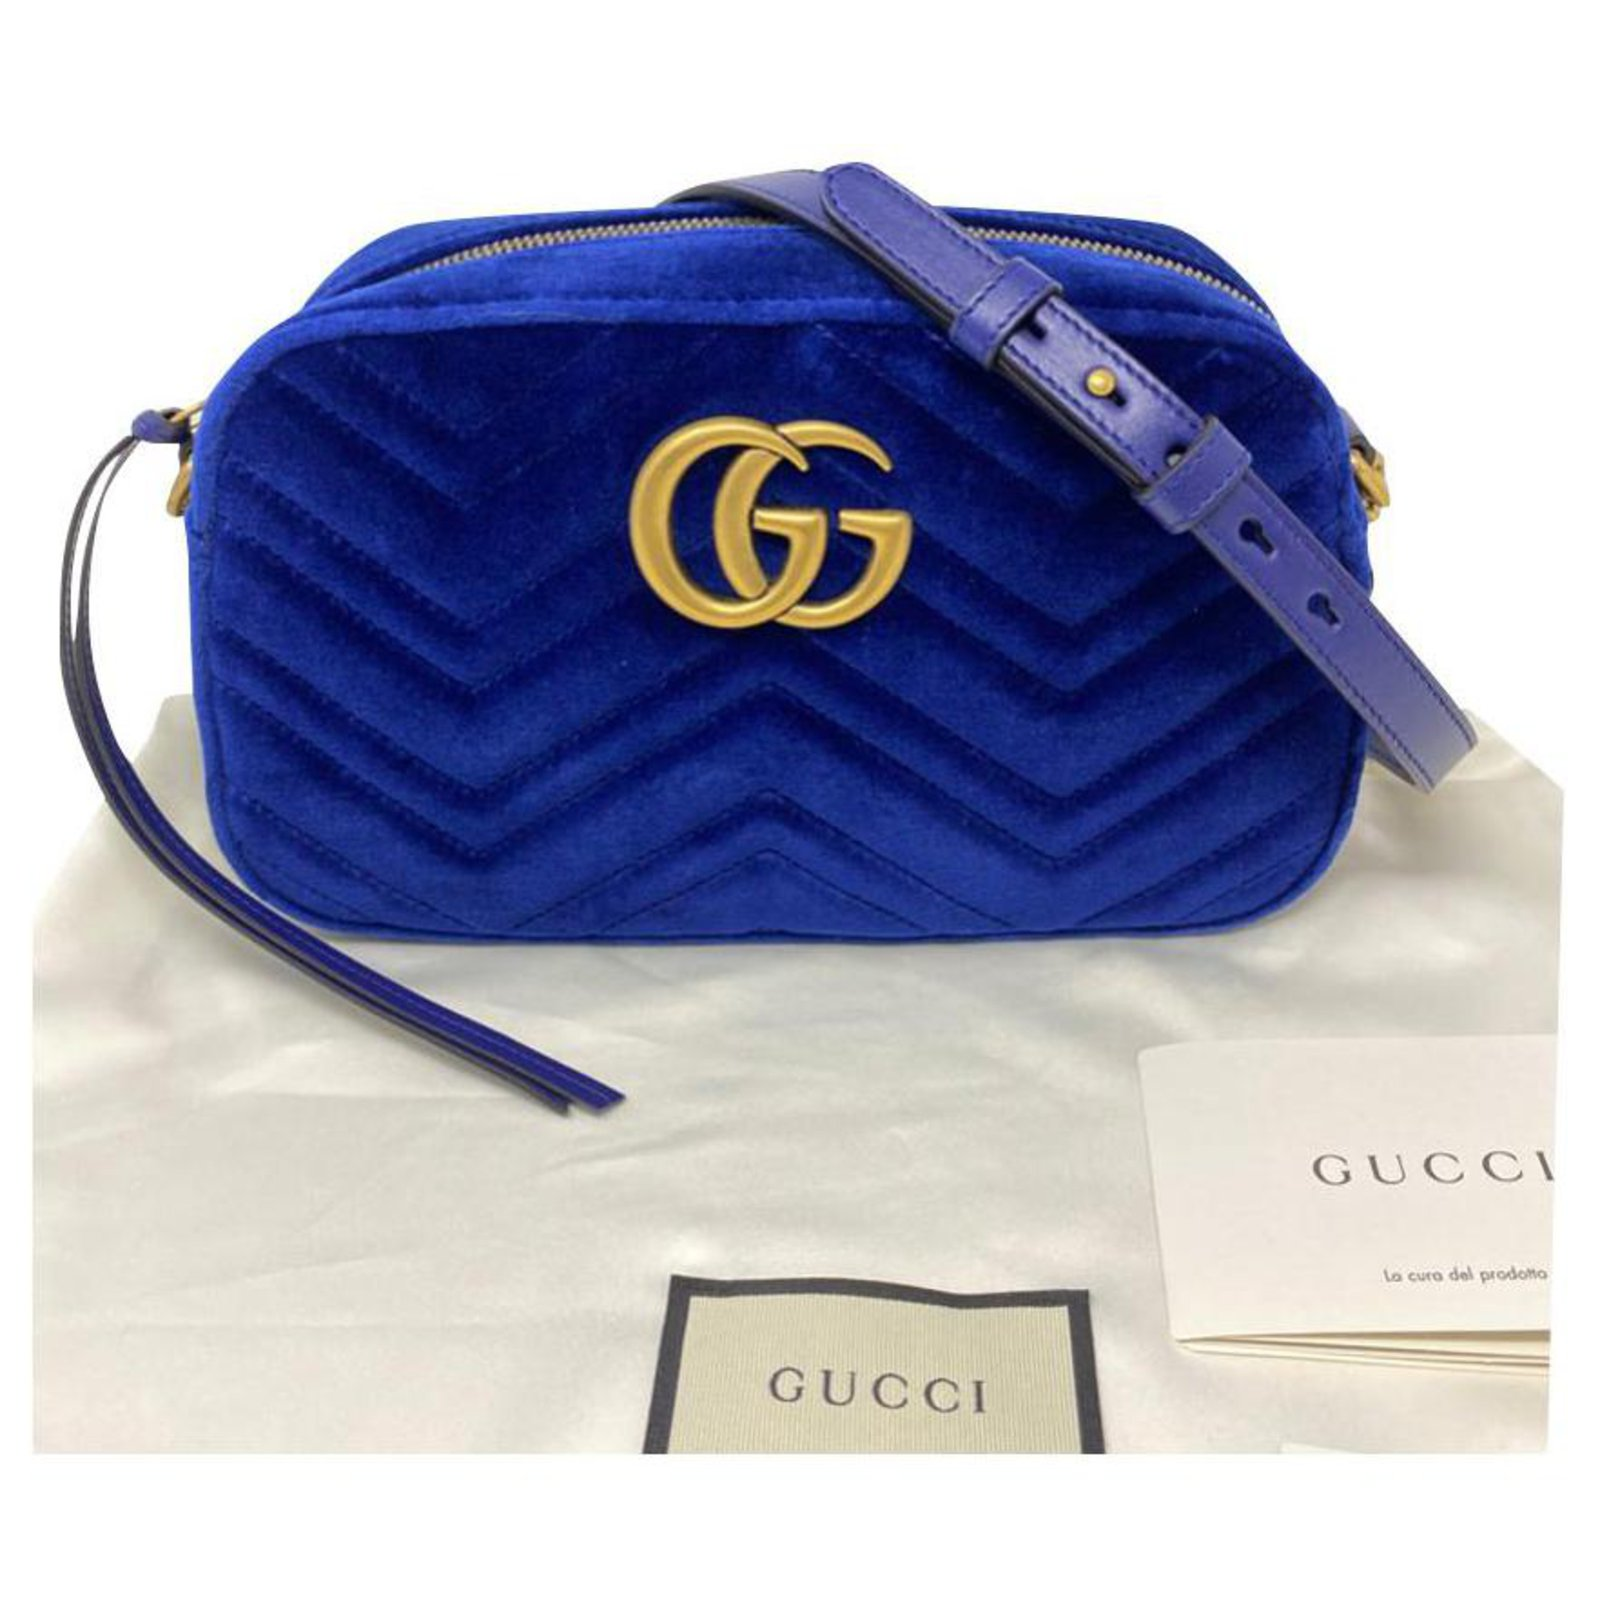 Gucci Gucci Marmont Camera Bag Handbags Velvet Blue Ref 181822 Joli Closet